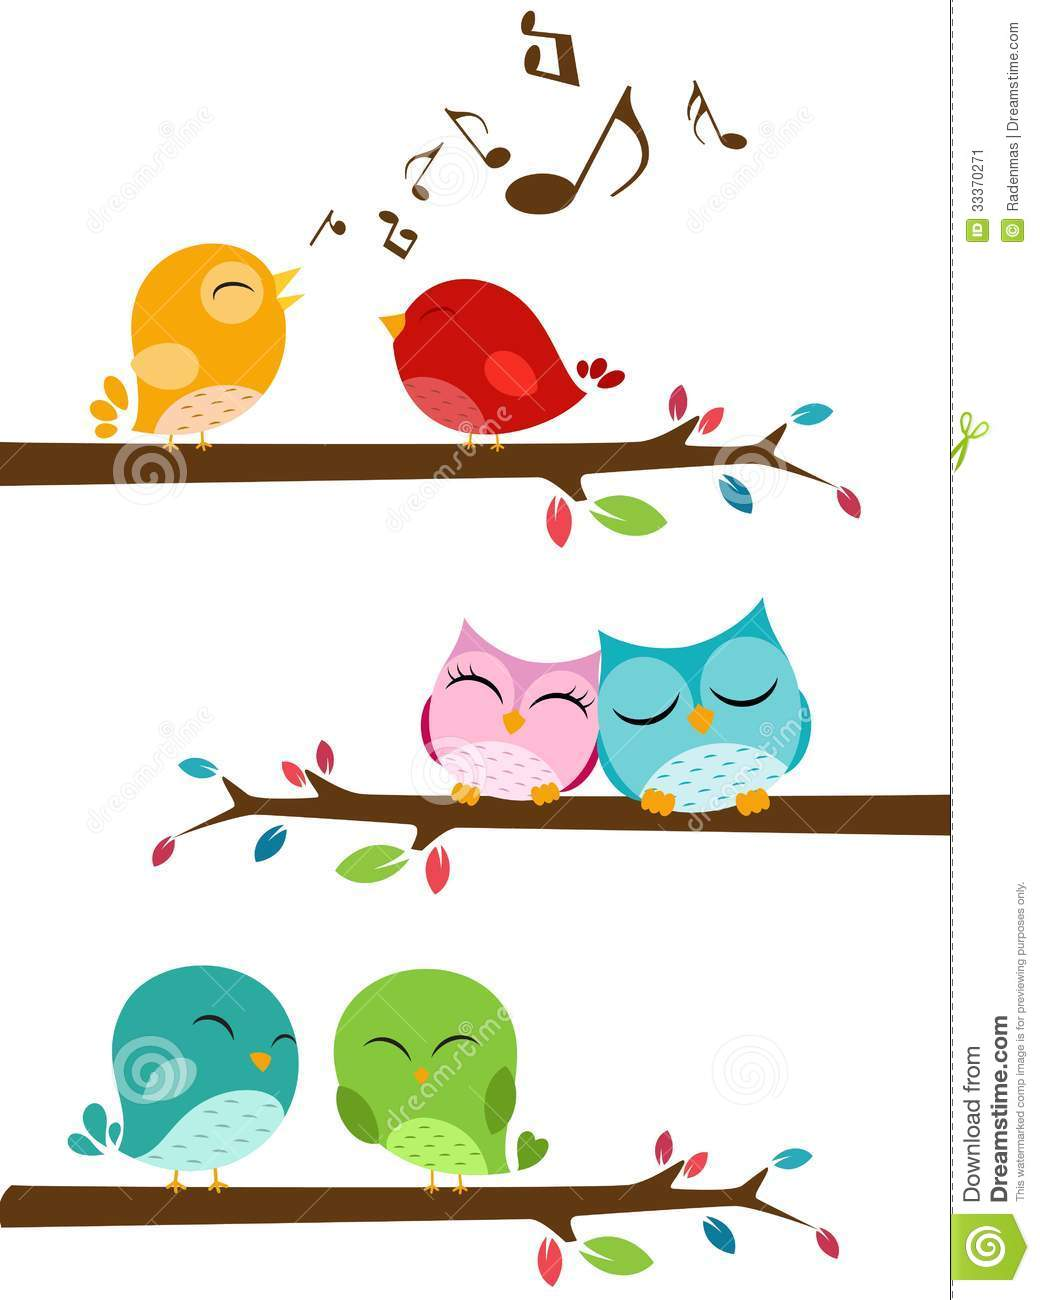 birds singing on the branch stock image image 33370271 pink owl on branch clip art owl on branch clipart black and white